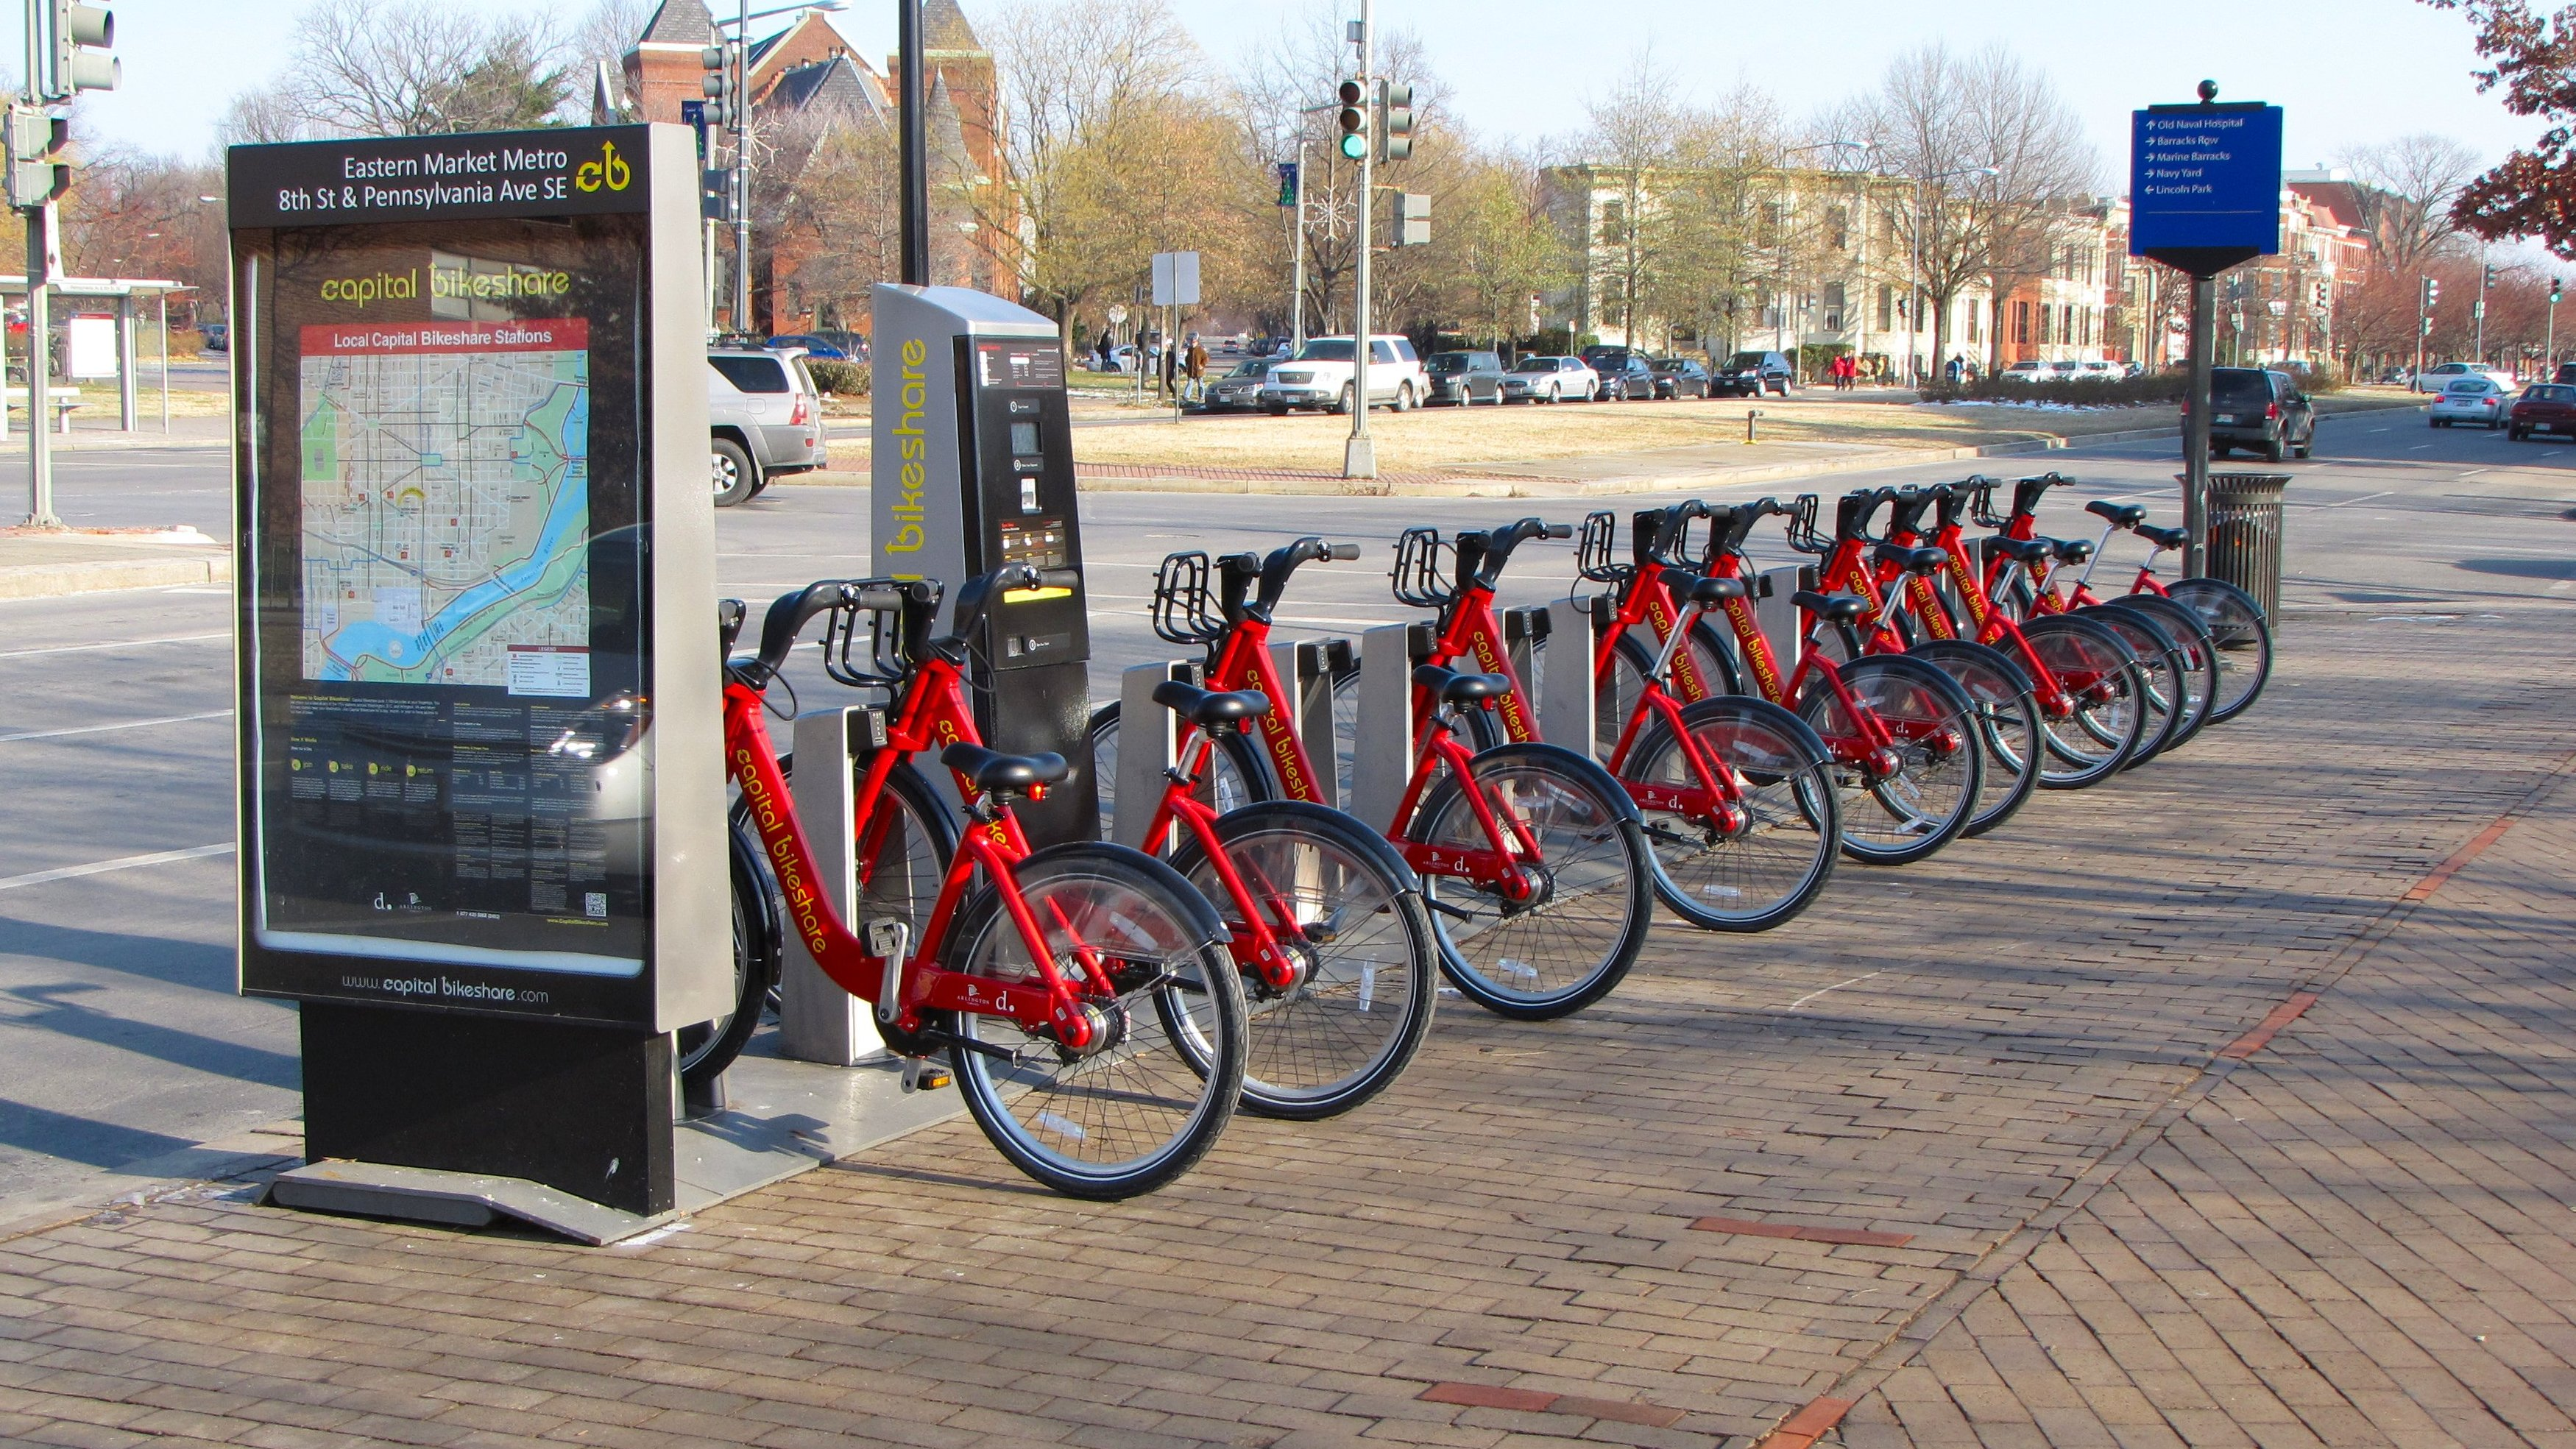 https://upload.wikimedia.org/wikipedia/commons/5/54/Capital_Bikeshare_station_outside_Eastern_Market_Metro.jpg